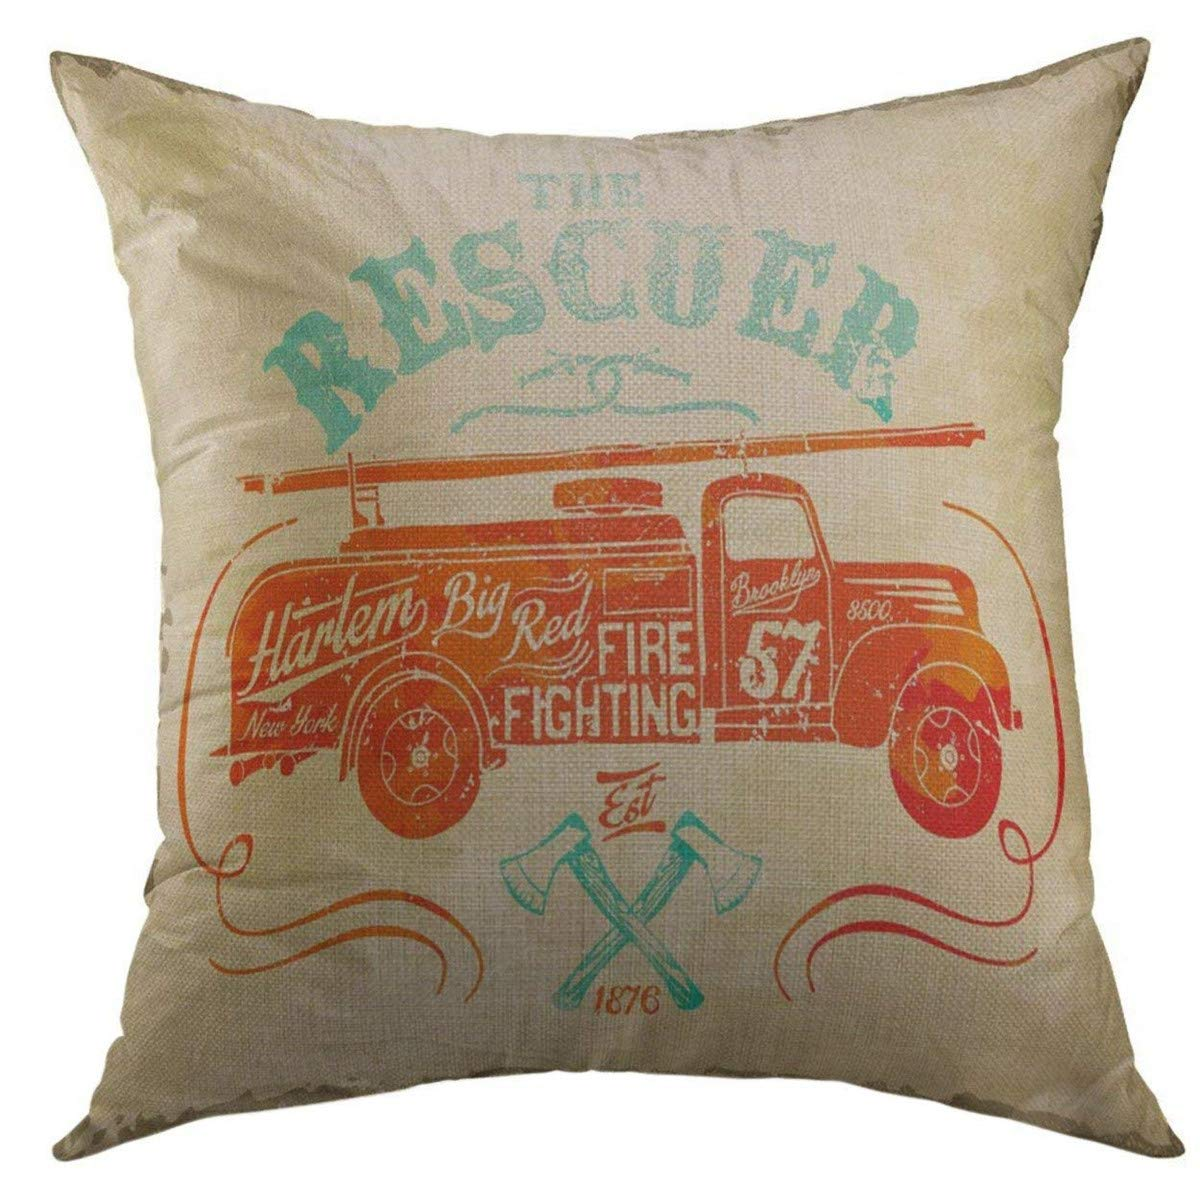 Mugod Decorative Throw Pillow Cover for Couch Sofa,Red Fireman Vintage Fire Fighting Label Black Firefighter Fighter Home Decor Pillow Case 18x18 Inch